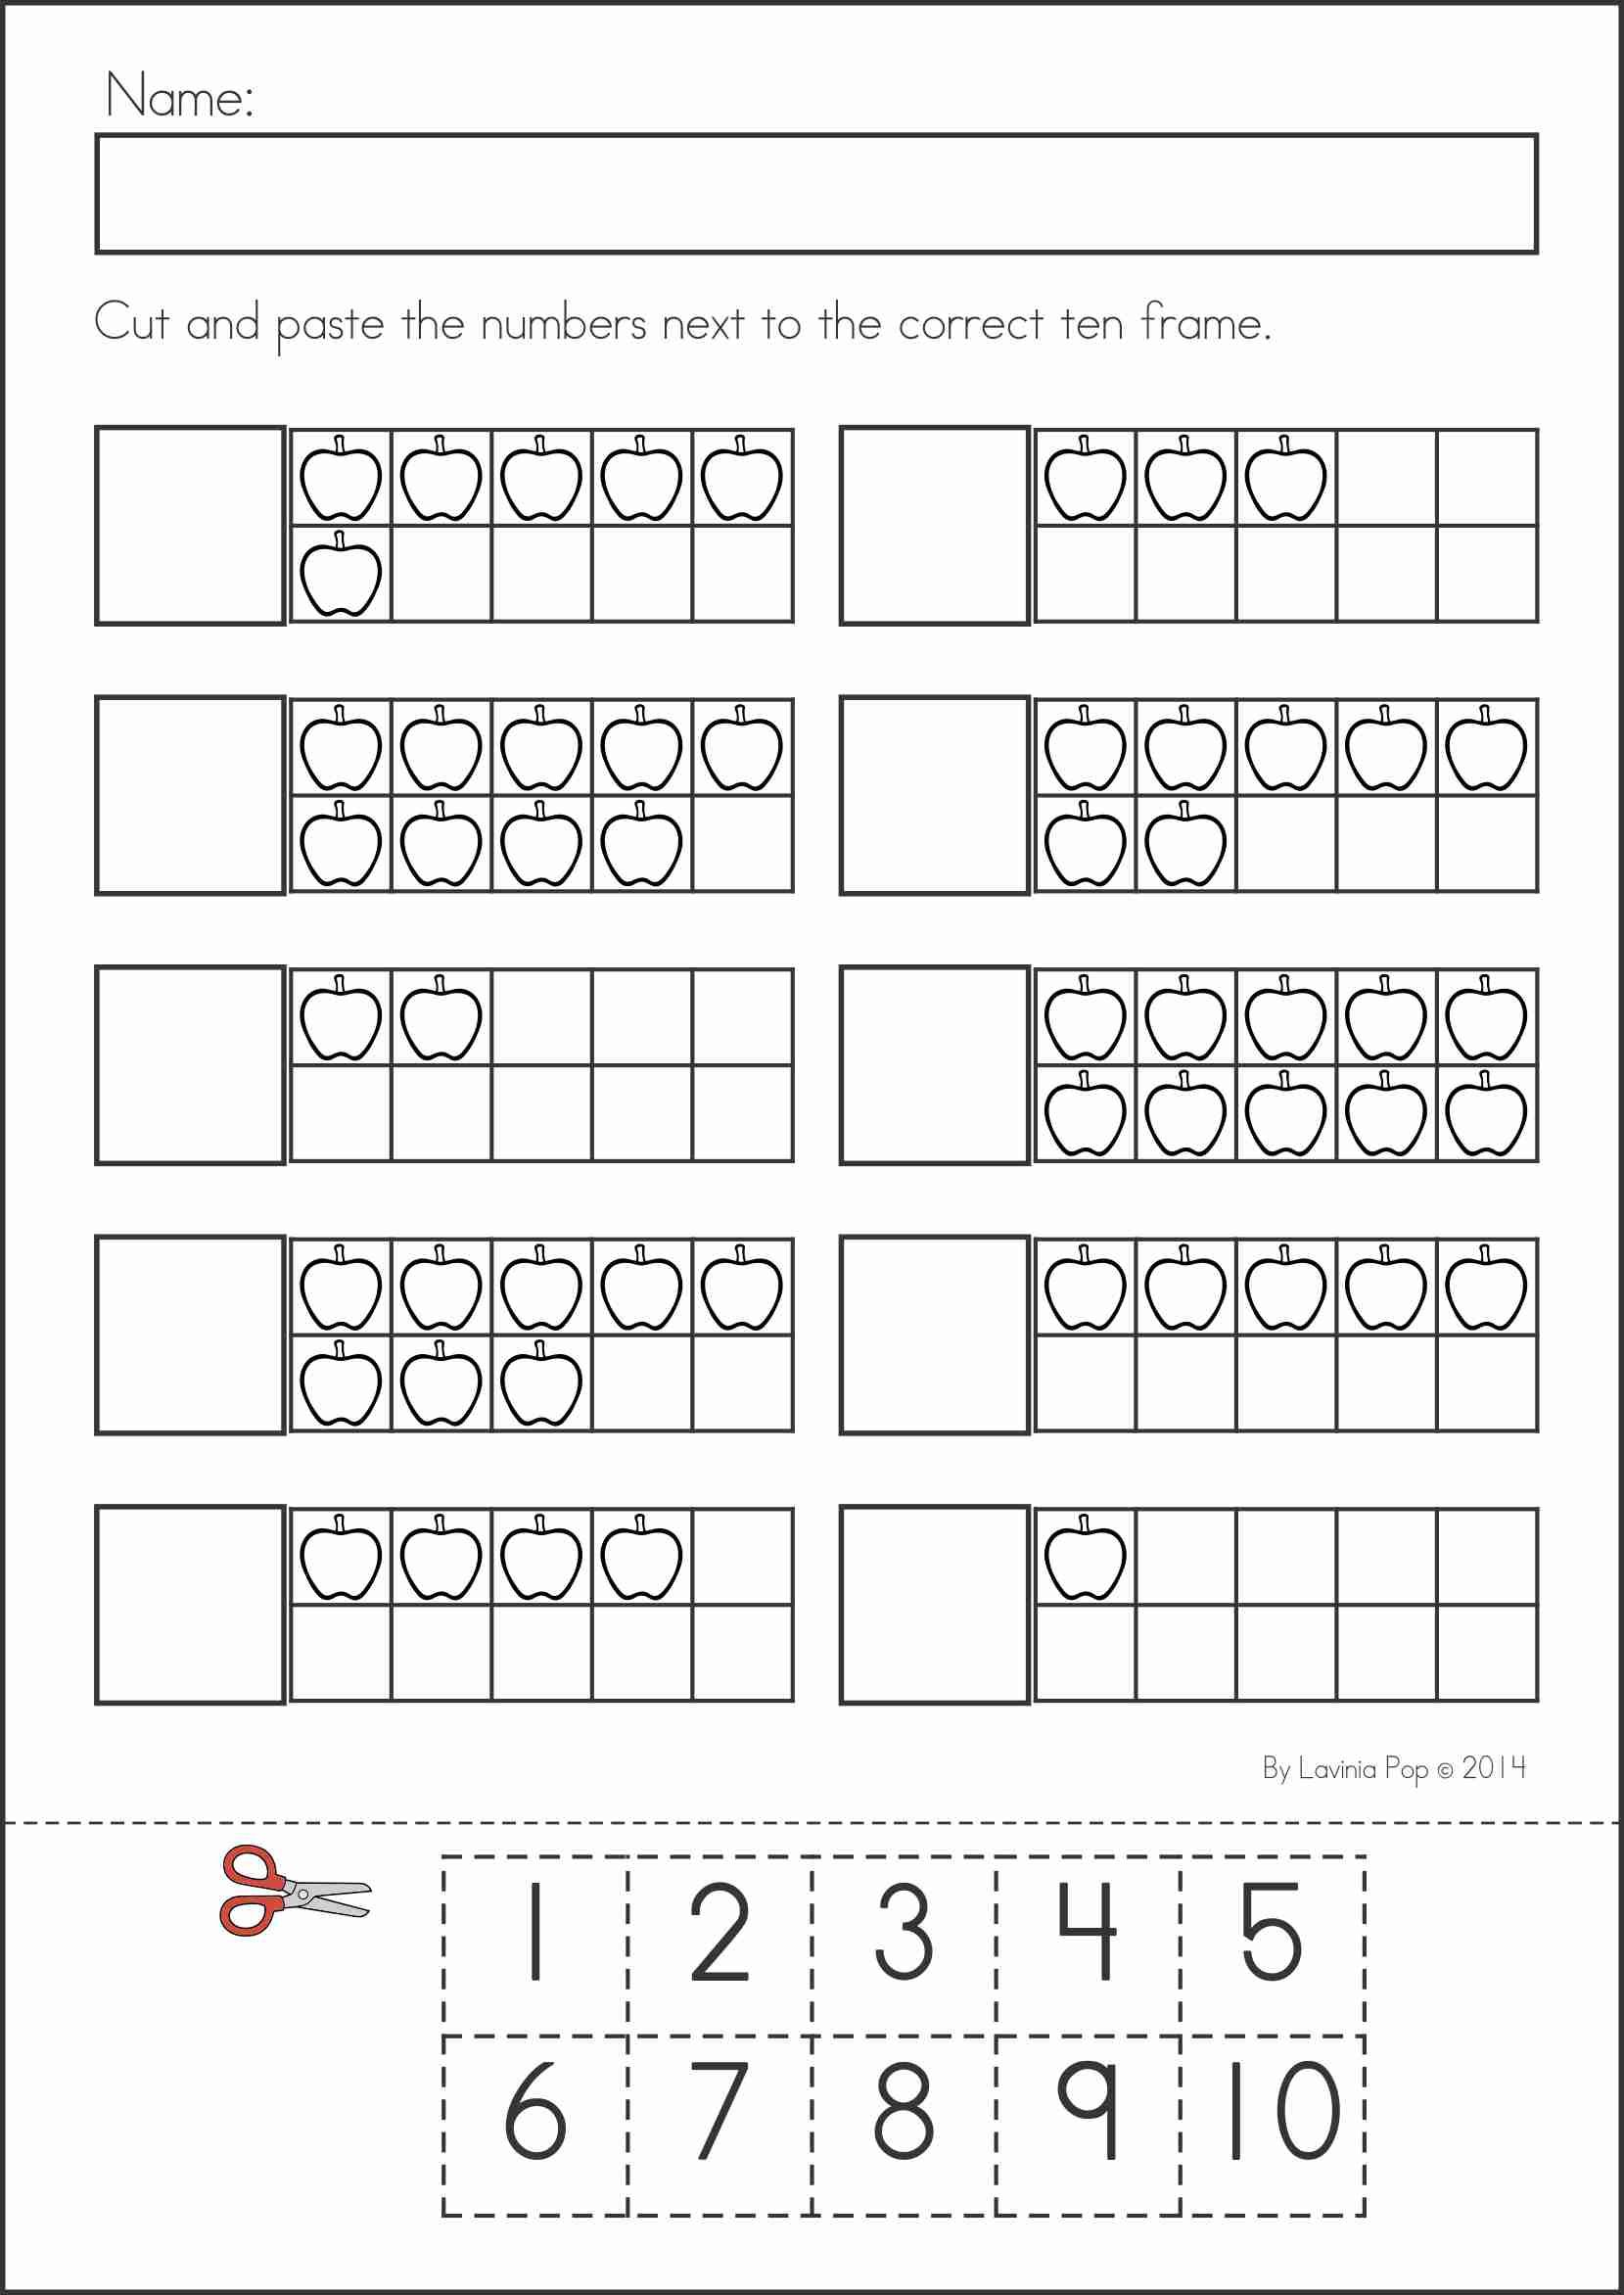 Worksheet Cut And Paste Math Worksheets Grass Fedjp